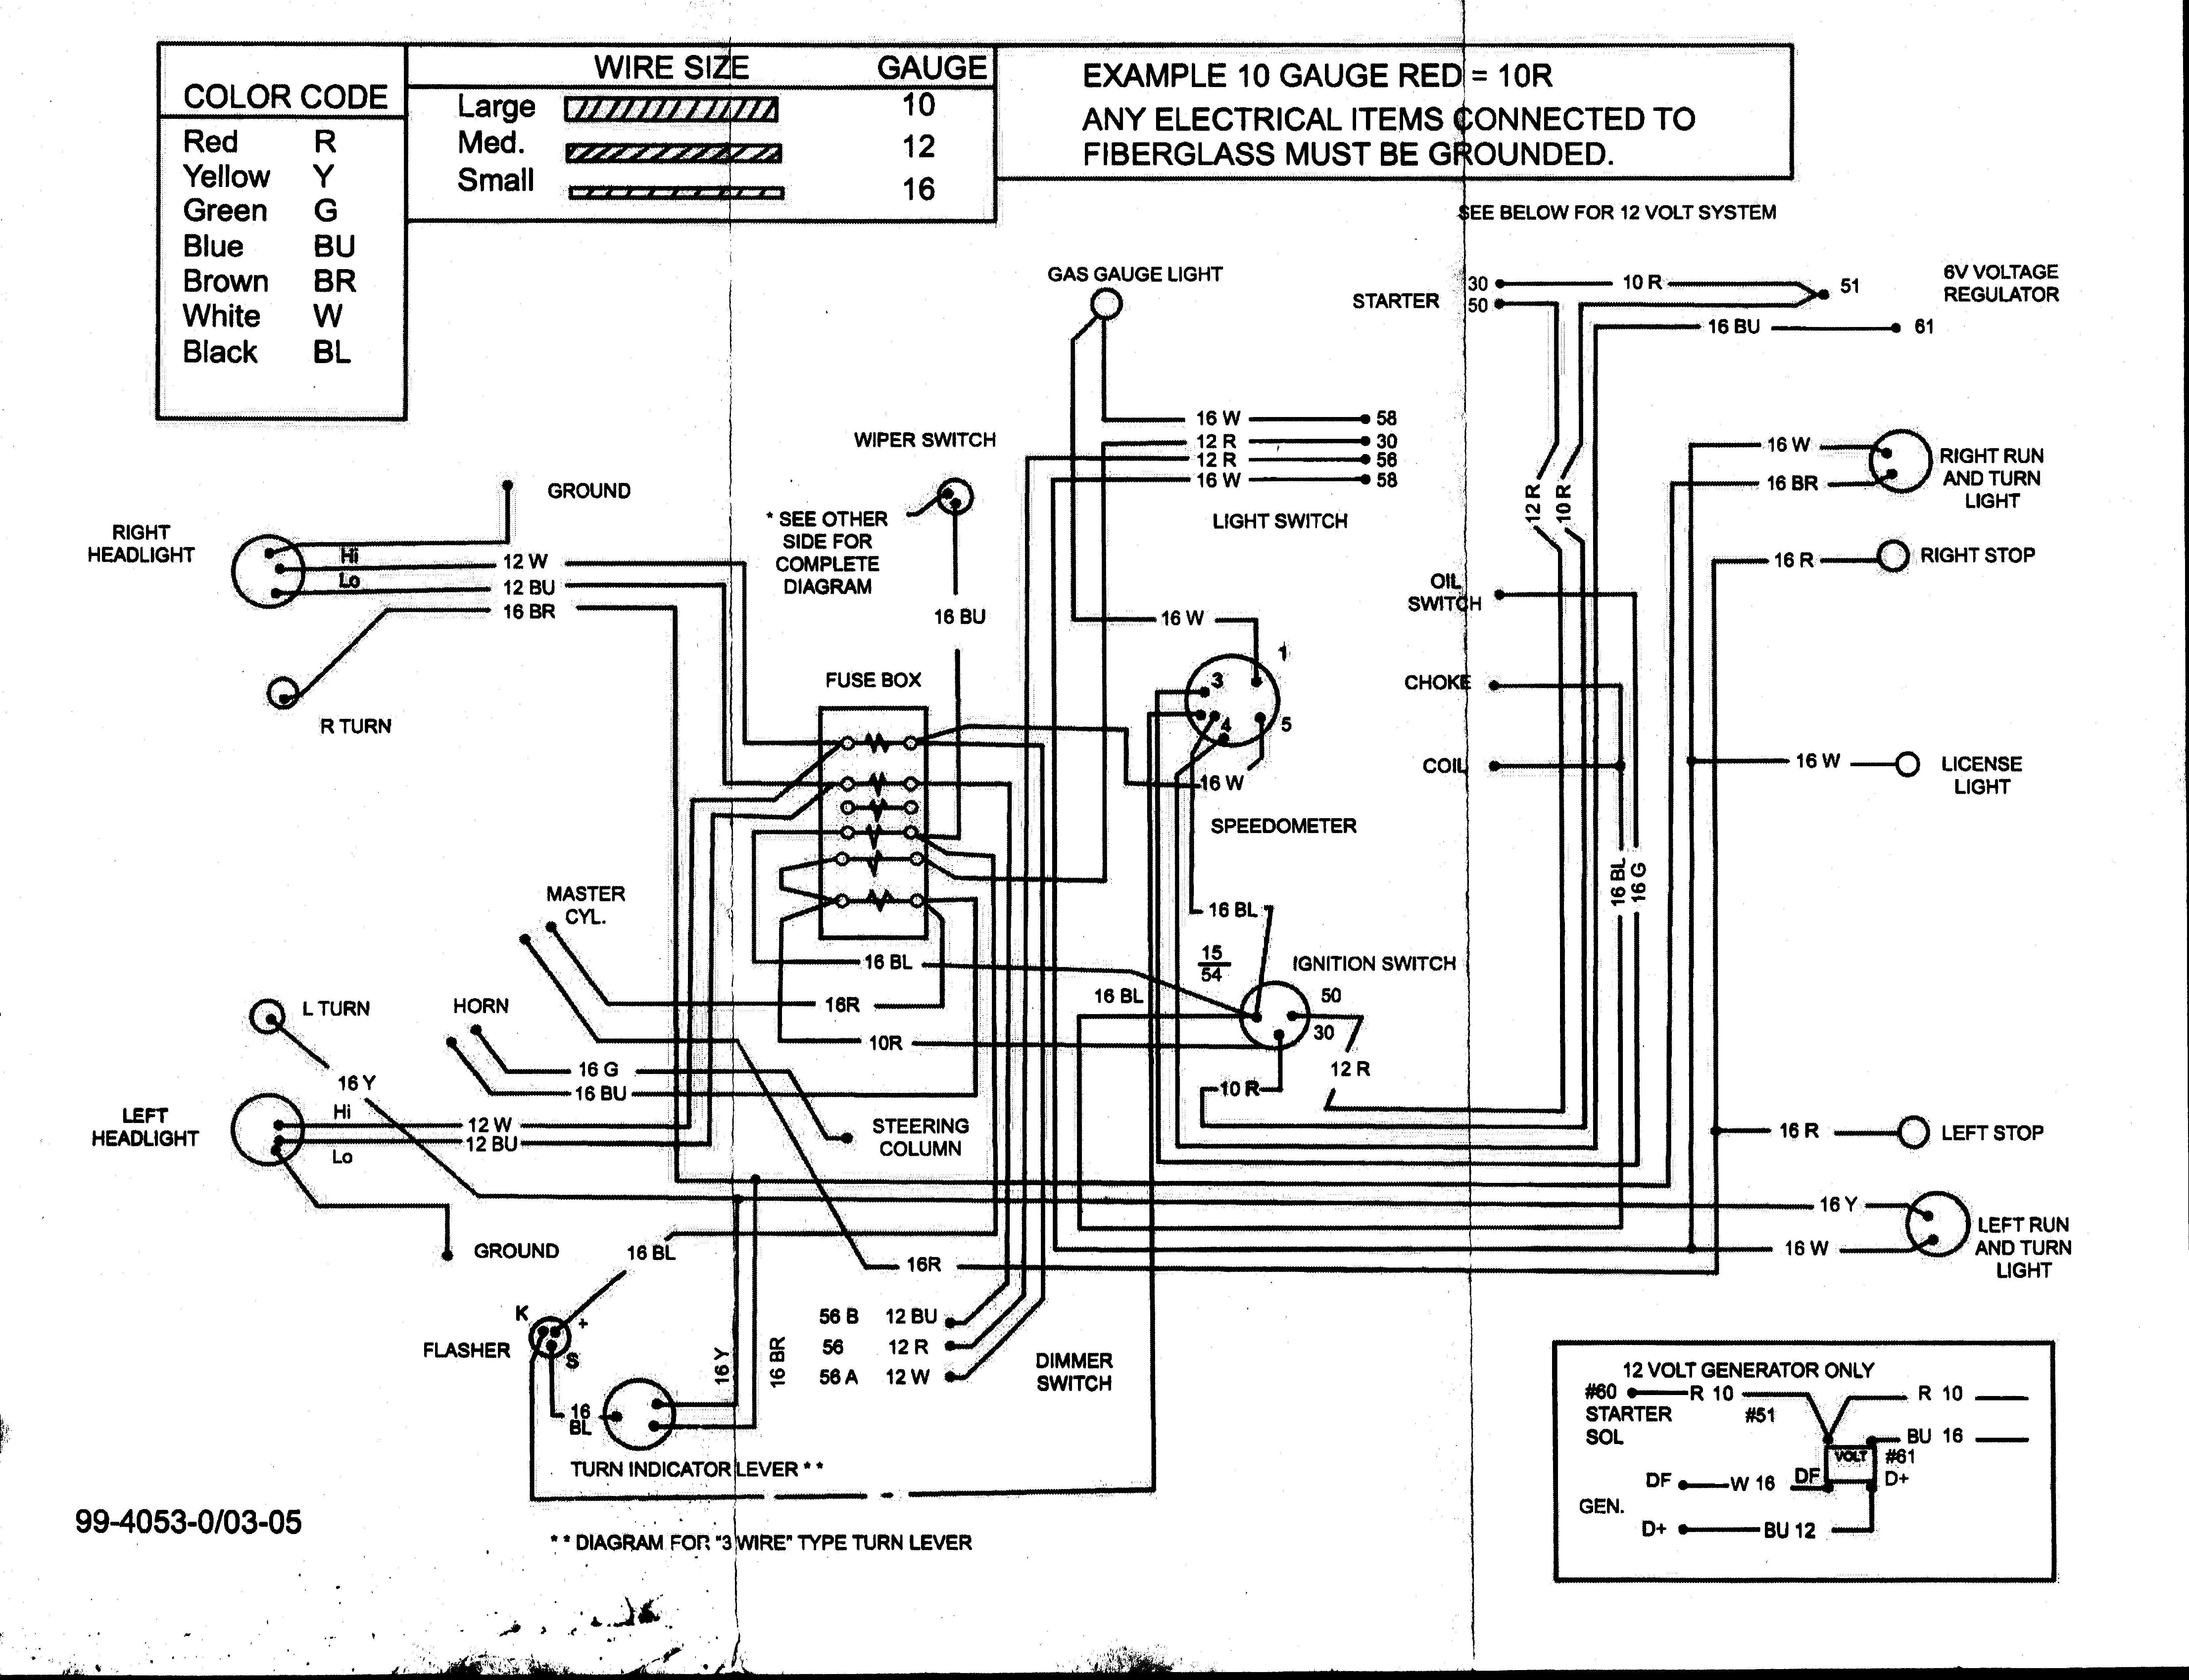 John Deere D130 Wiring Diagram Over Shift Wiring Diagram for 2002 Escape Experts Wiring Diagram • Of John Deere D130 Wiring Diagram